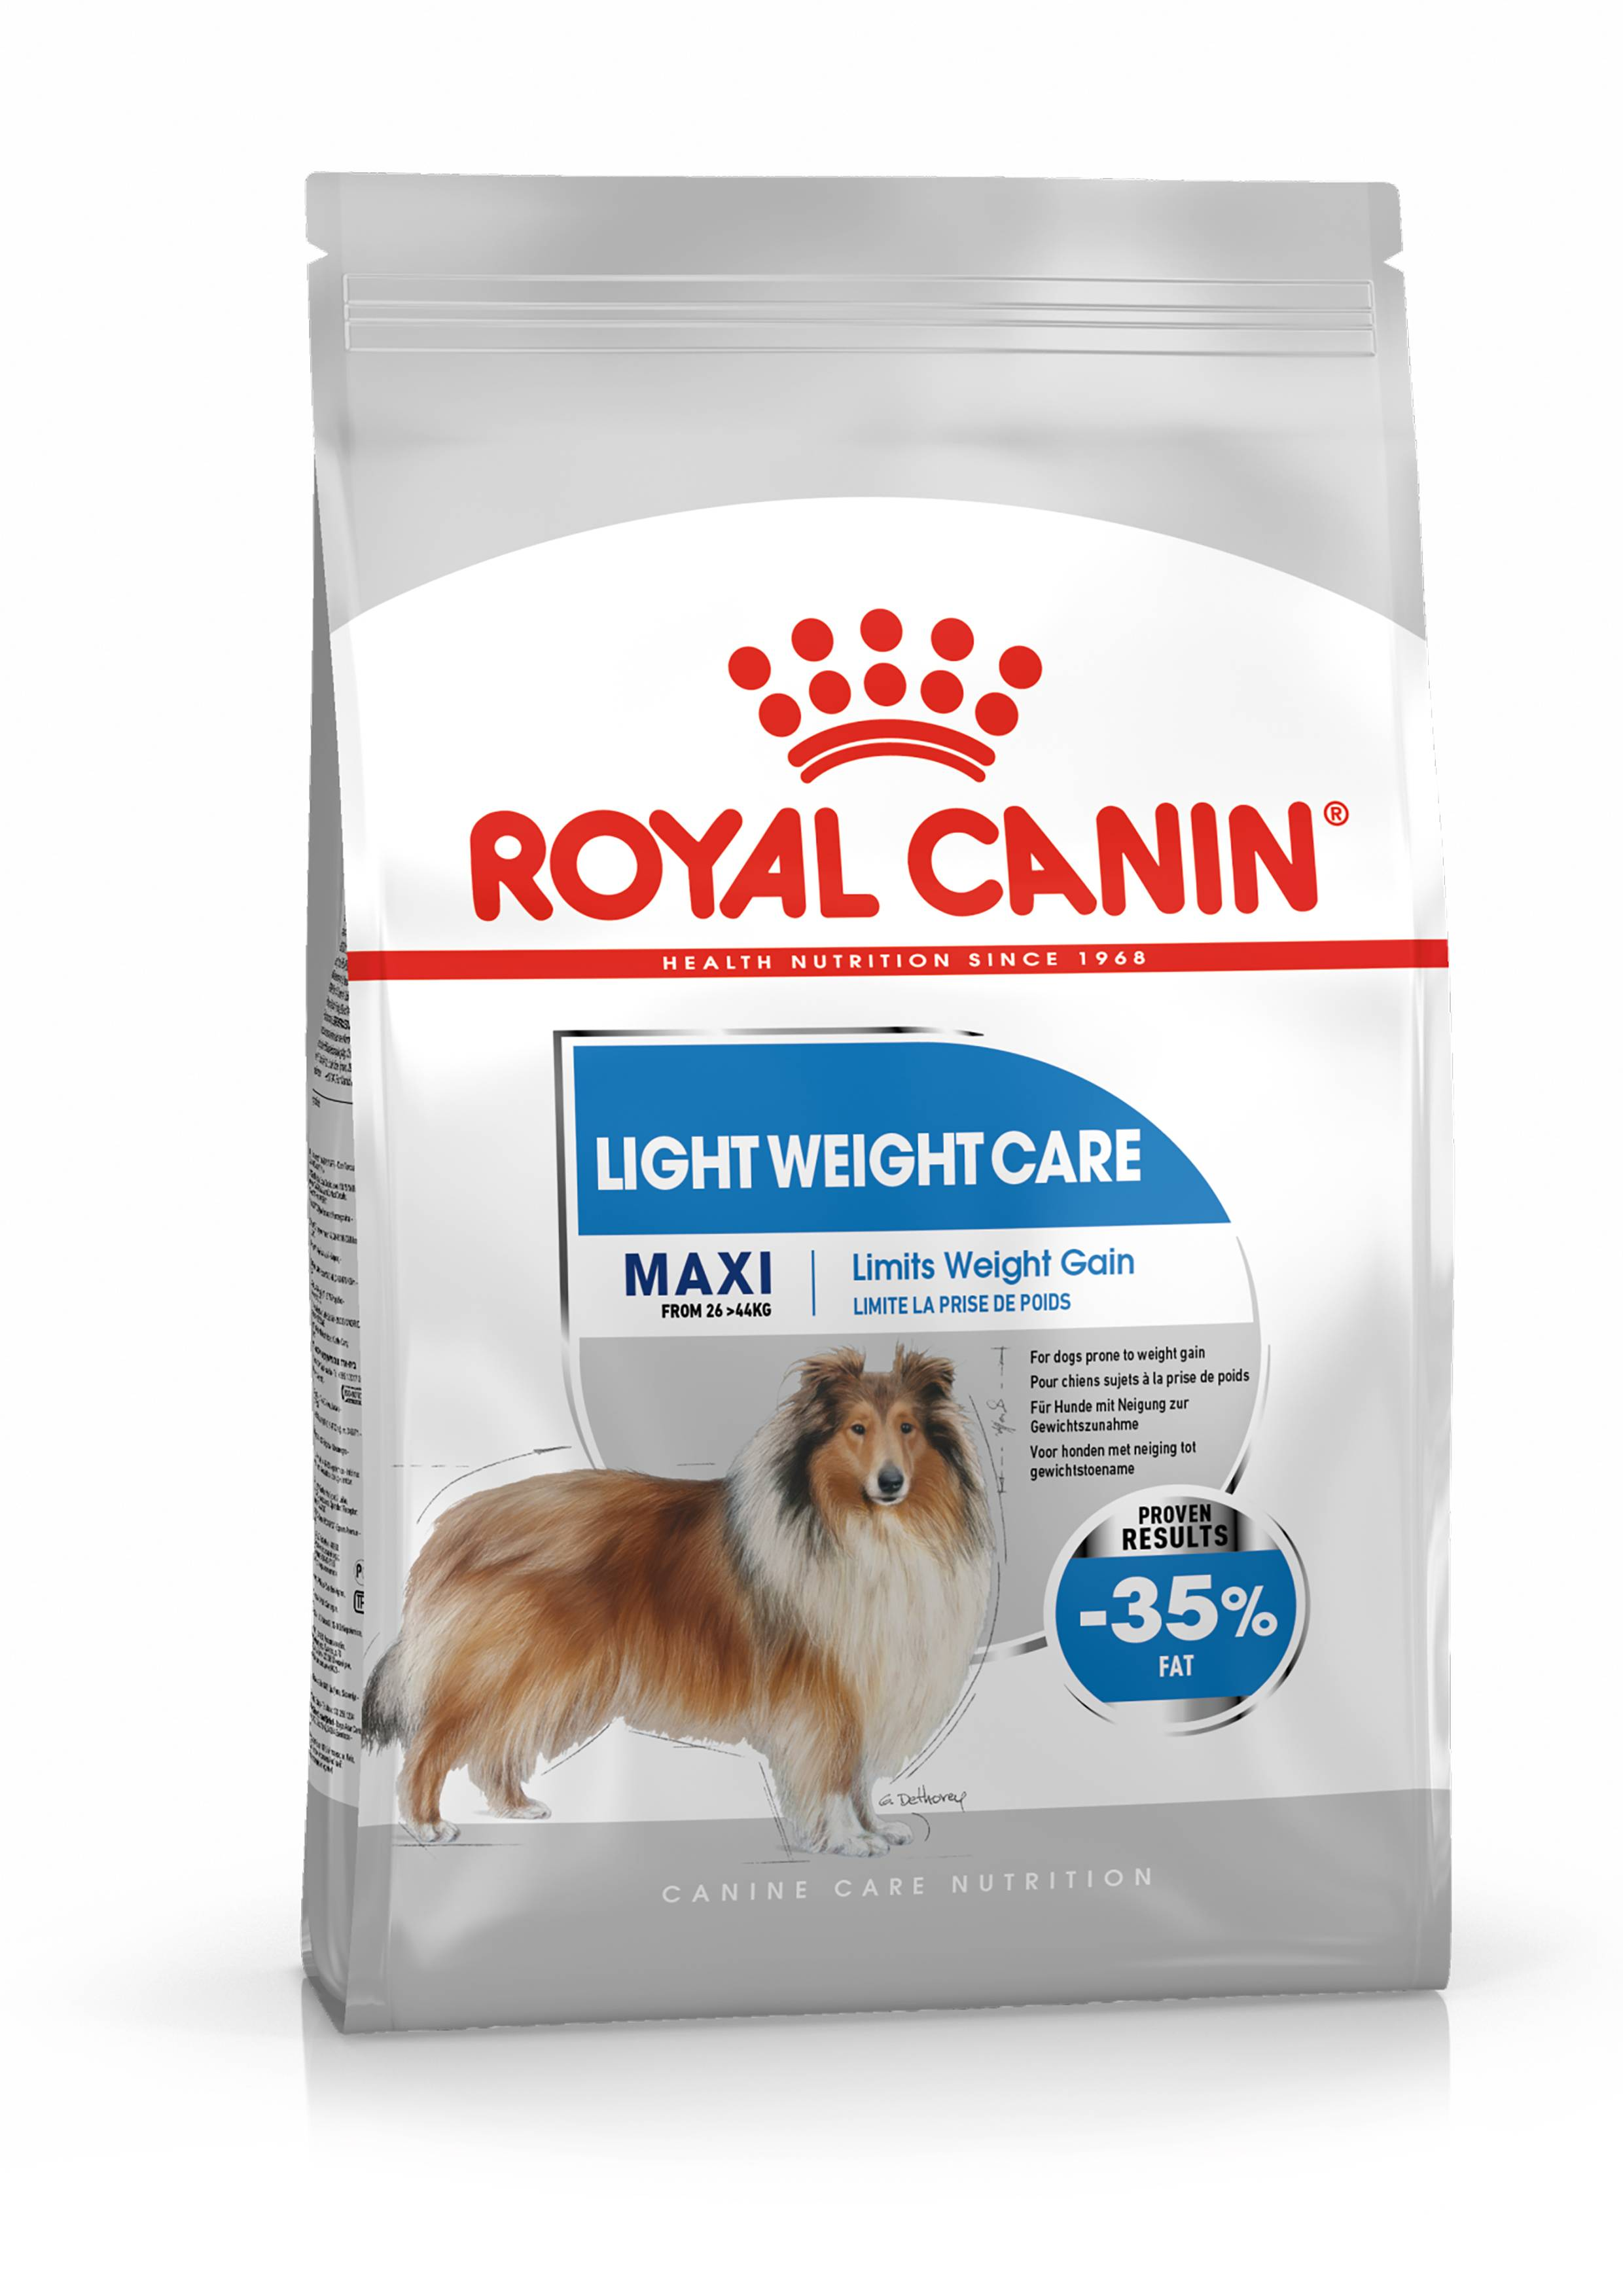 Royal Canin Maxi Light Weight Care pour chien 2 x 10 kg